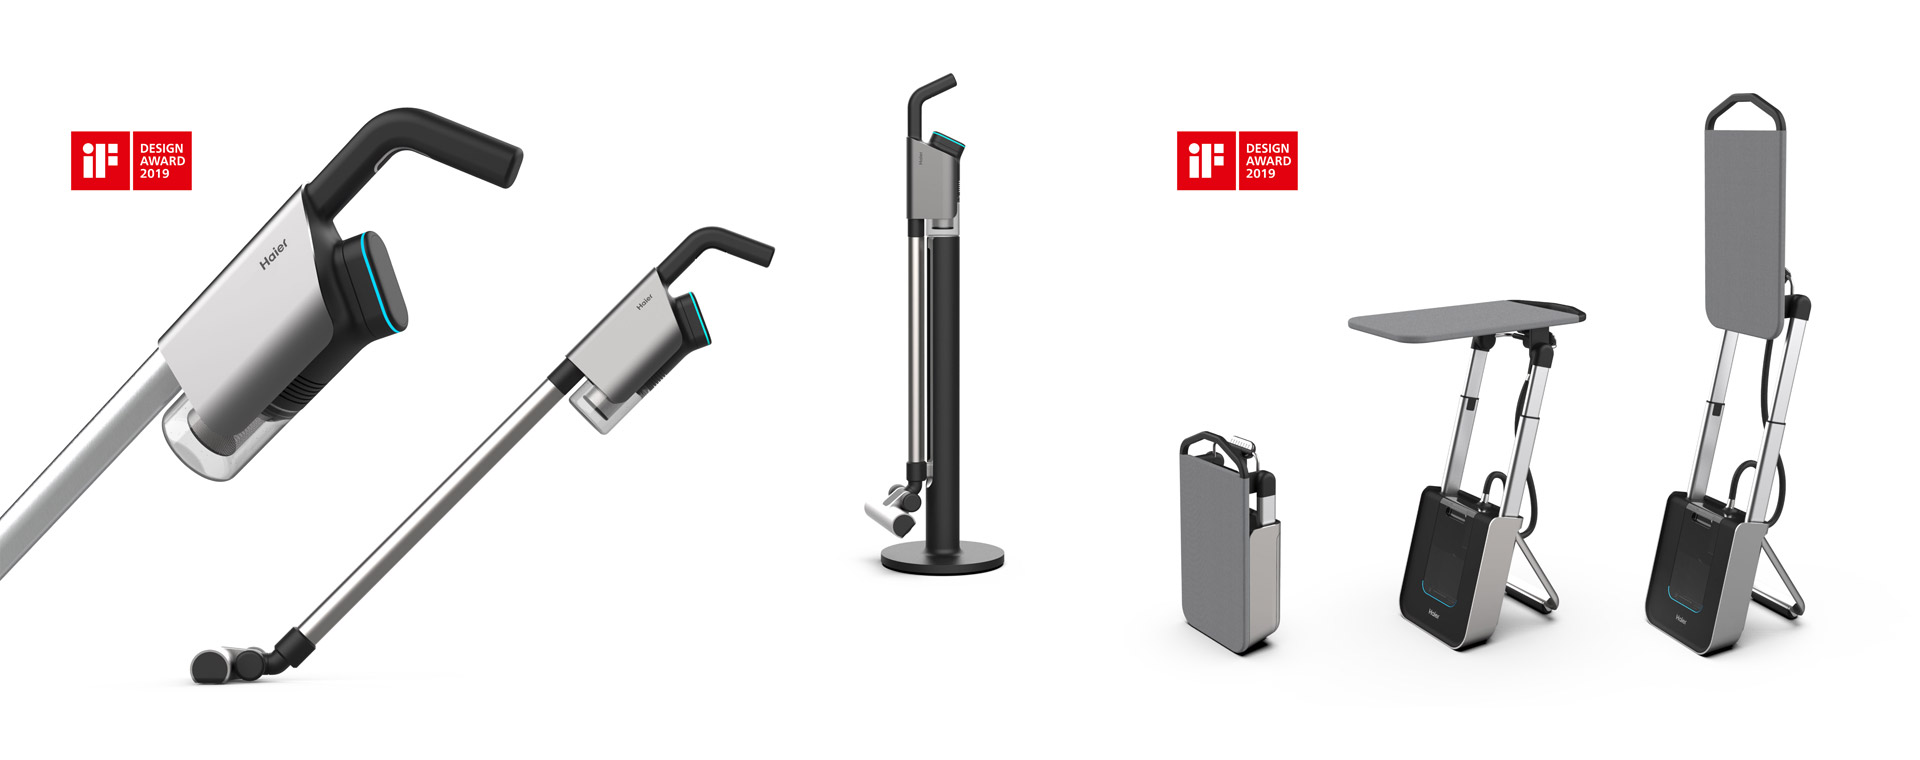 daniels erdwiens industrial design for Haier Group iF Design award